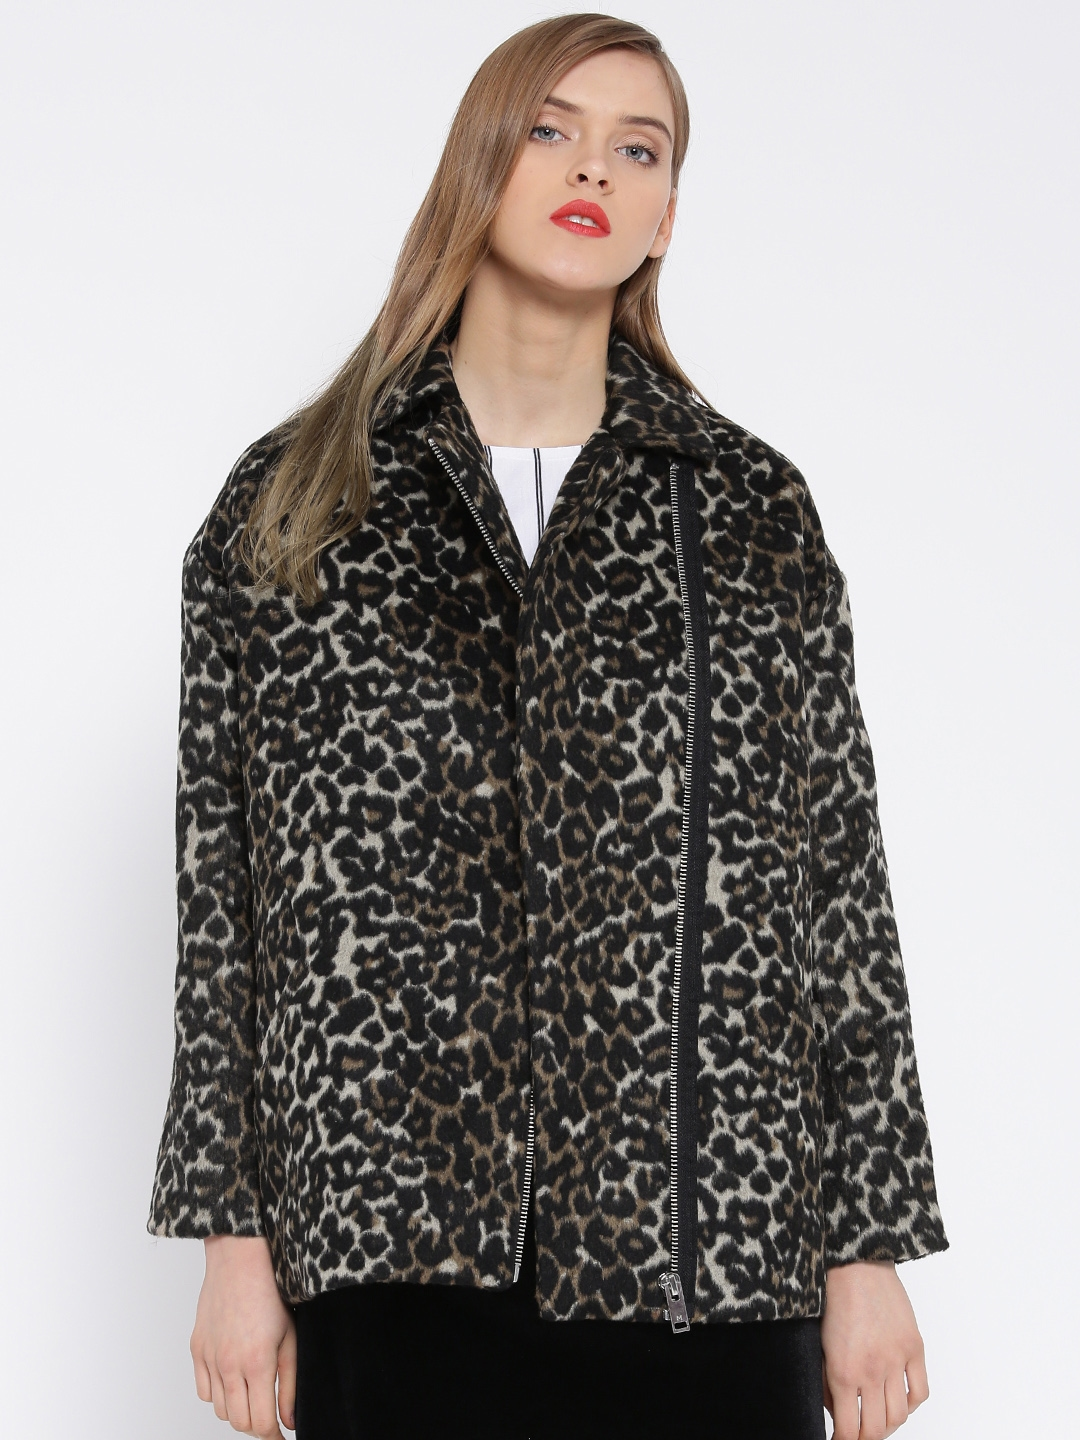 f23c93e12c3db7 Buy MANGO Black   Beige Animal Print Jacket - Jackets for Women 1670628